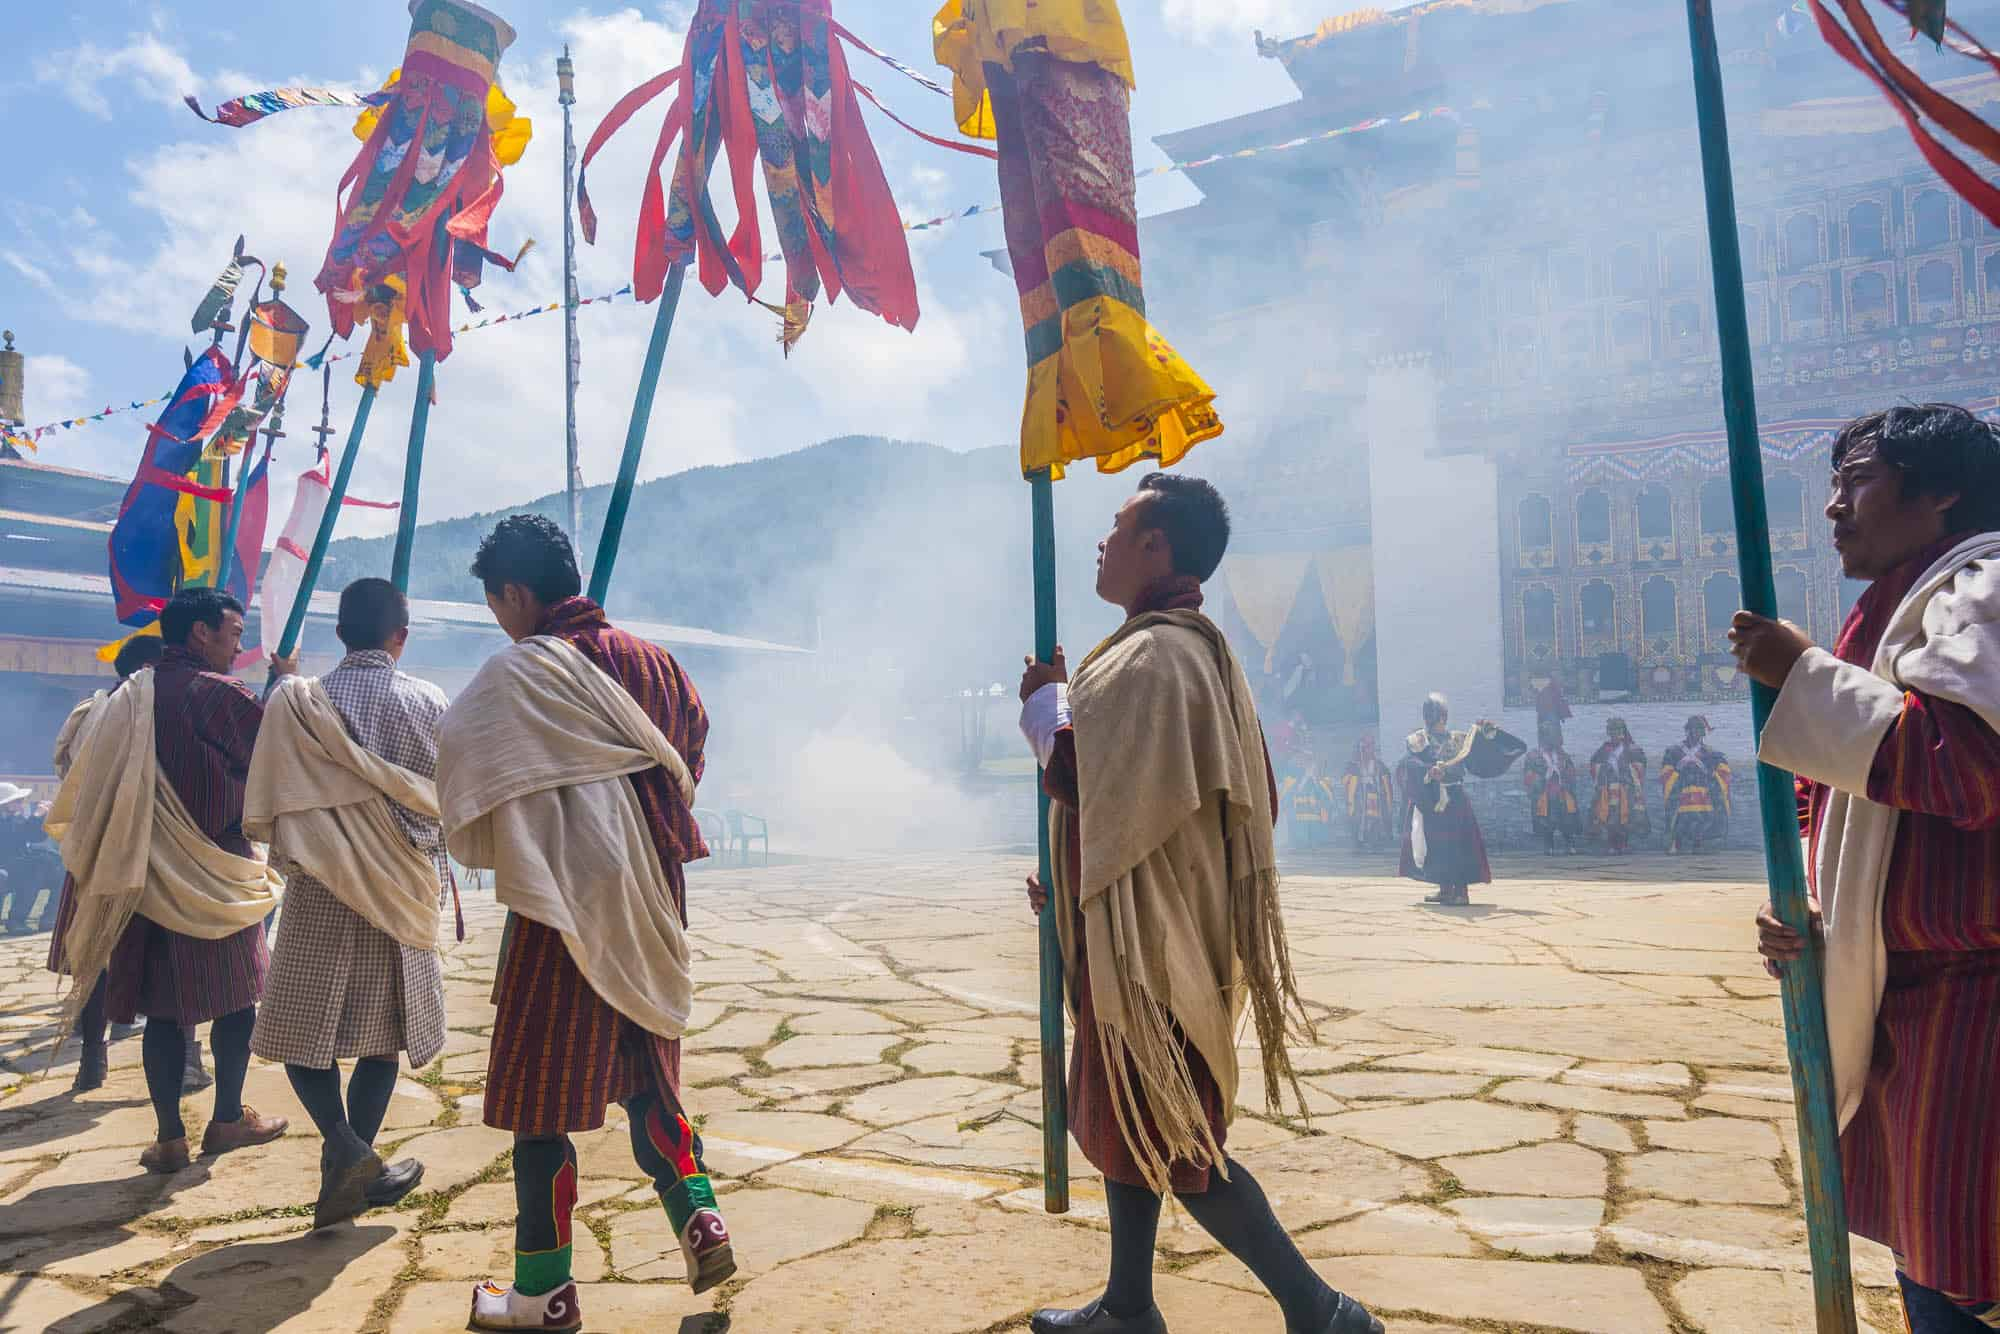 Dancing and chanting at a festival in Bhutan